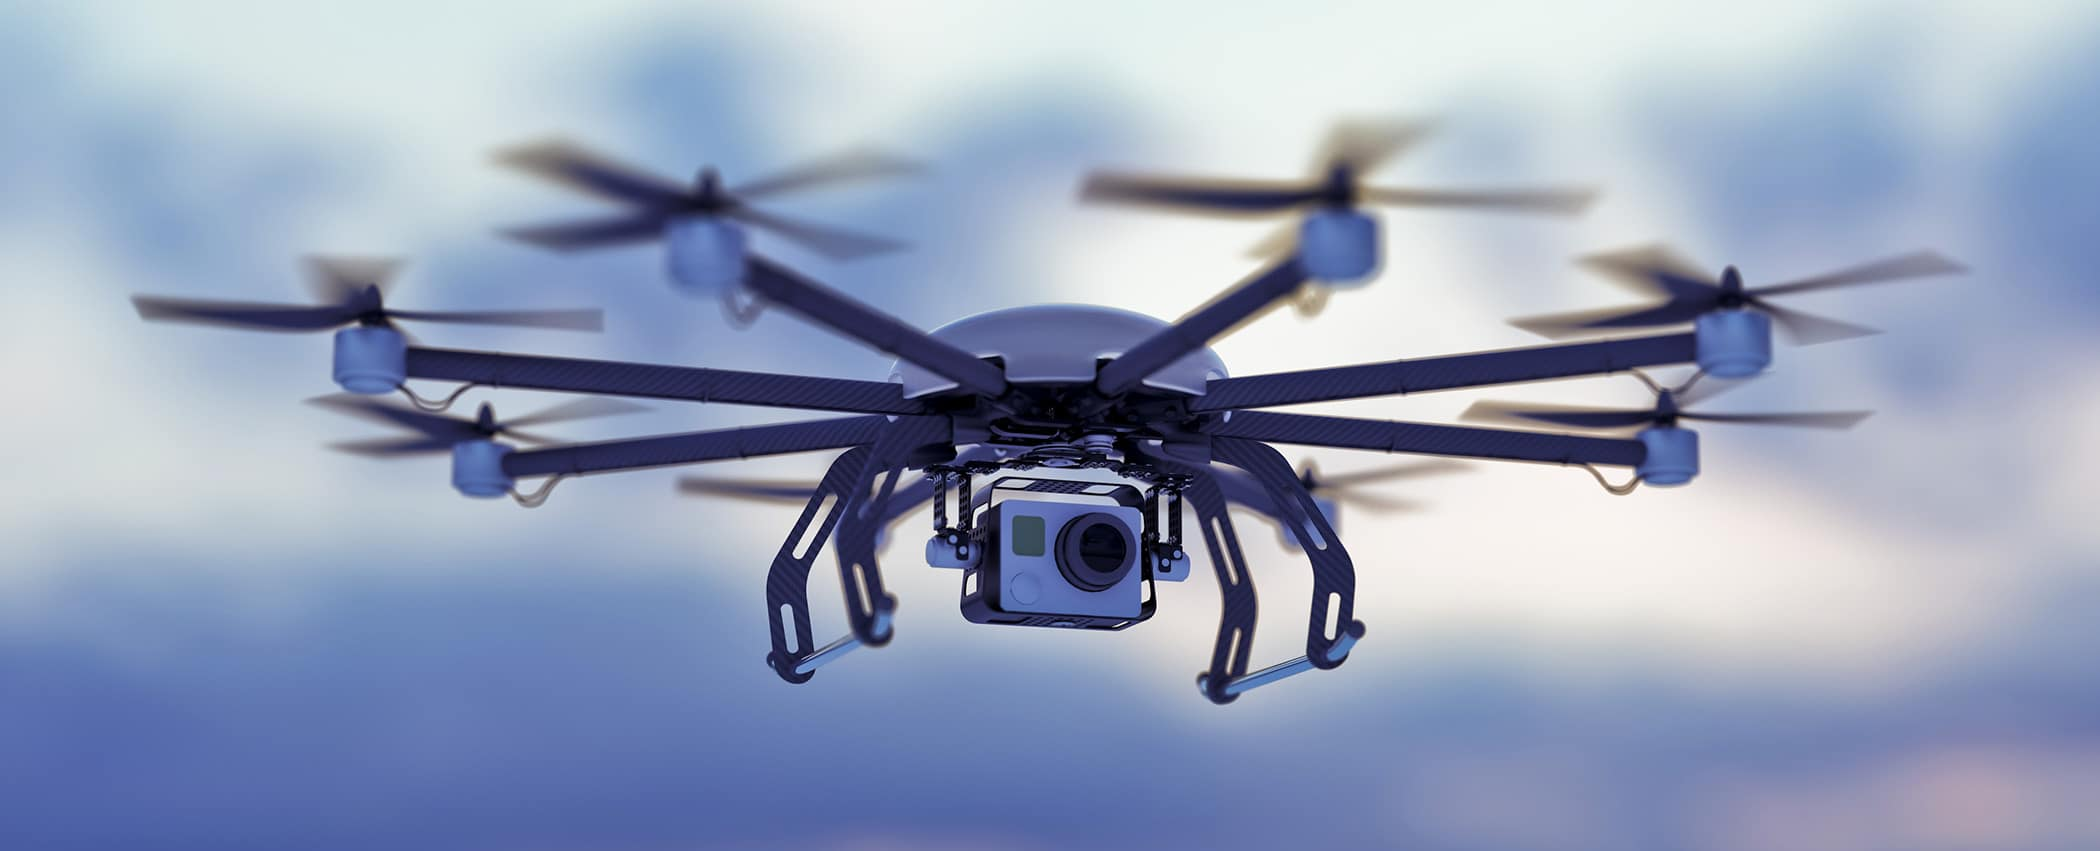 Bachelor of Science in Unmanned Systems Applications